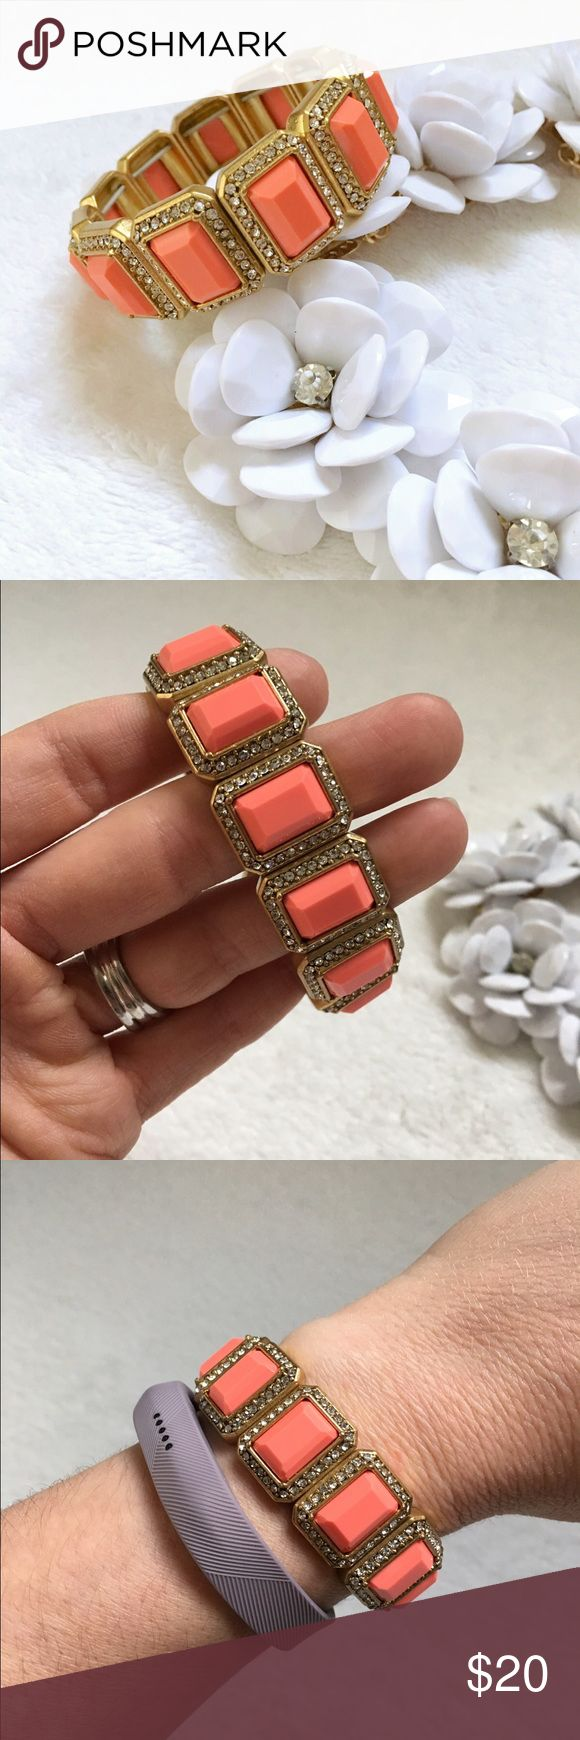 j crew bracelet J Crew Factory gorgeous stretch bracelet. Coral colored stones surrounded by clear rhinestones set in faux gold. Like new condition! J. Crew Jewelry Bracelets